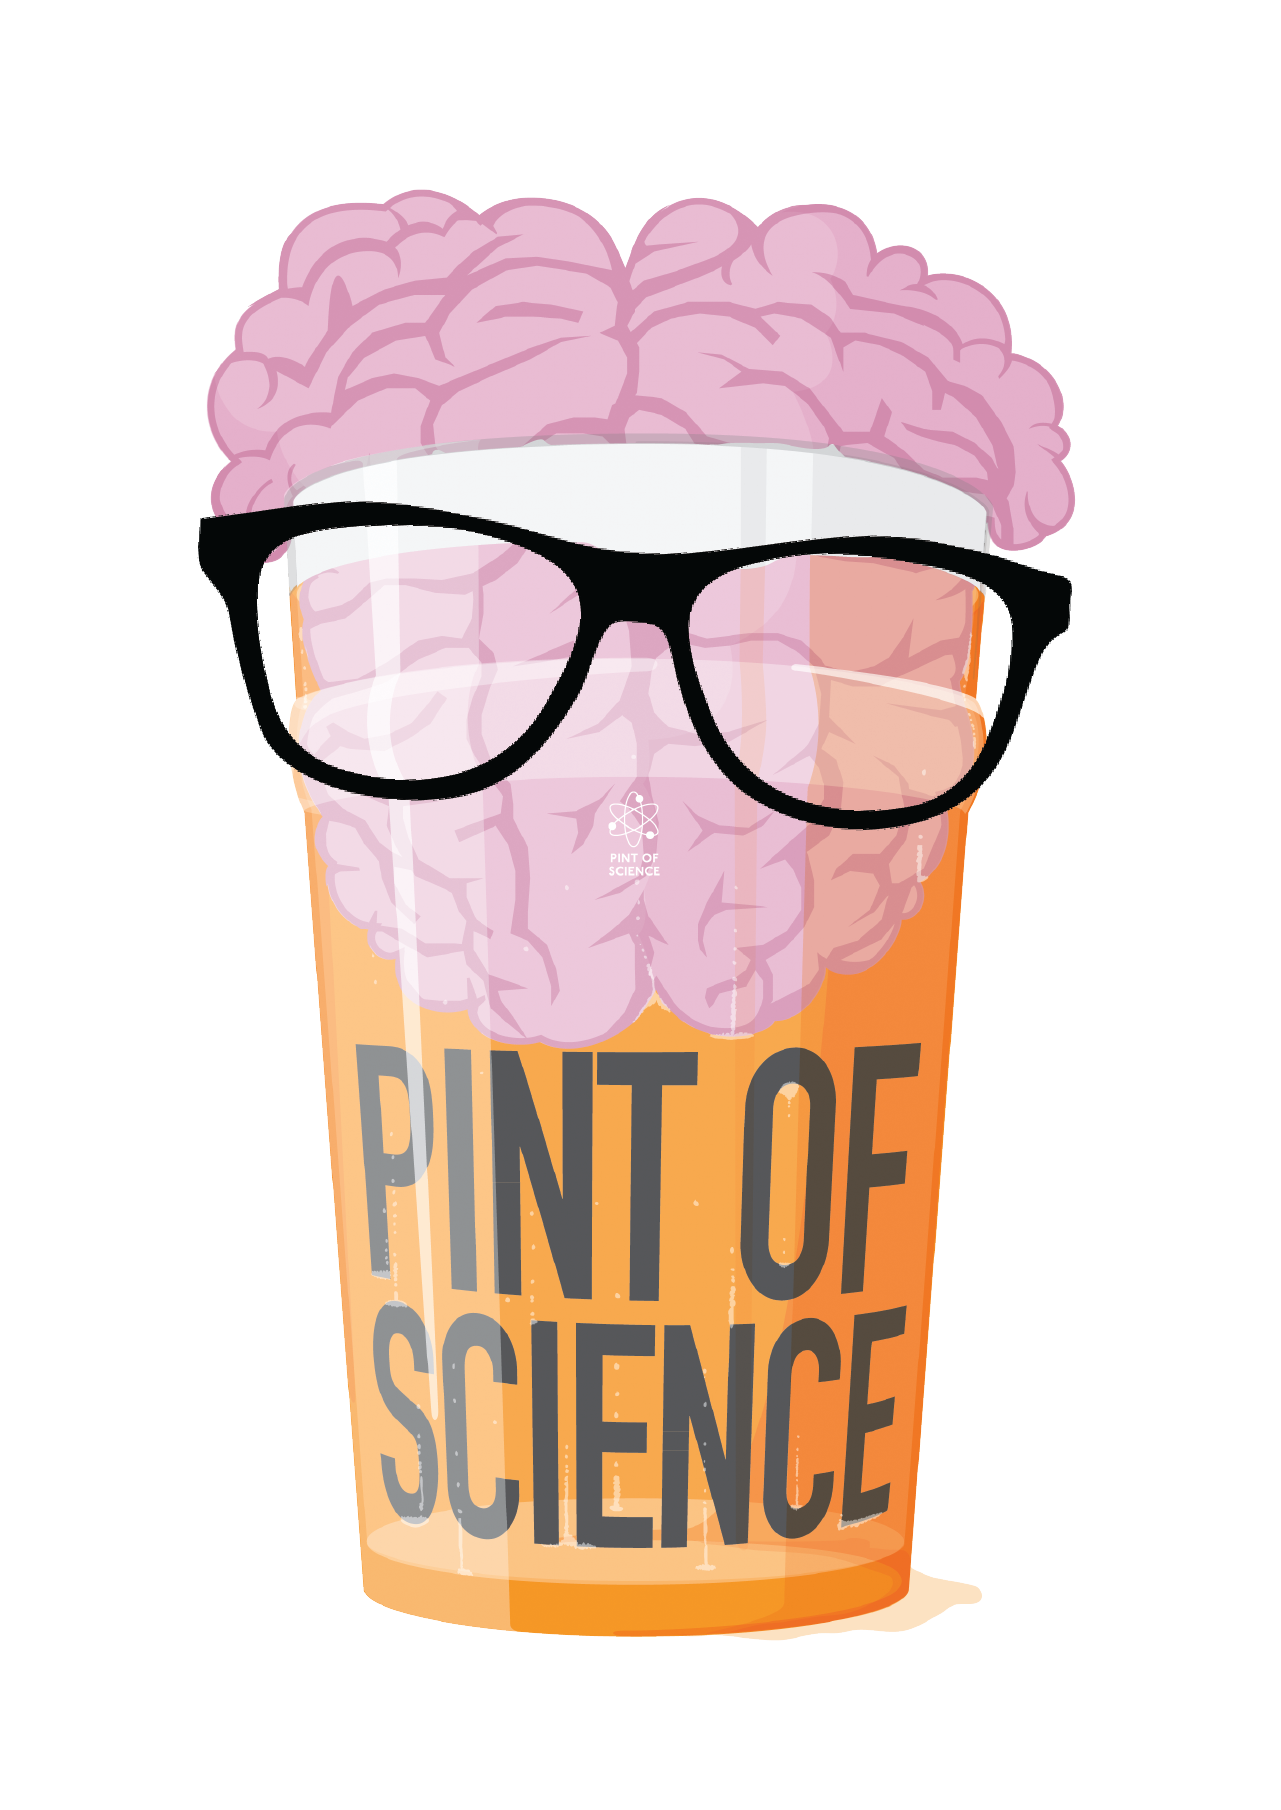 Pint of Science icon